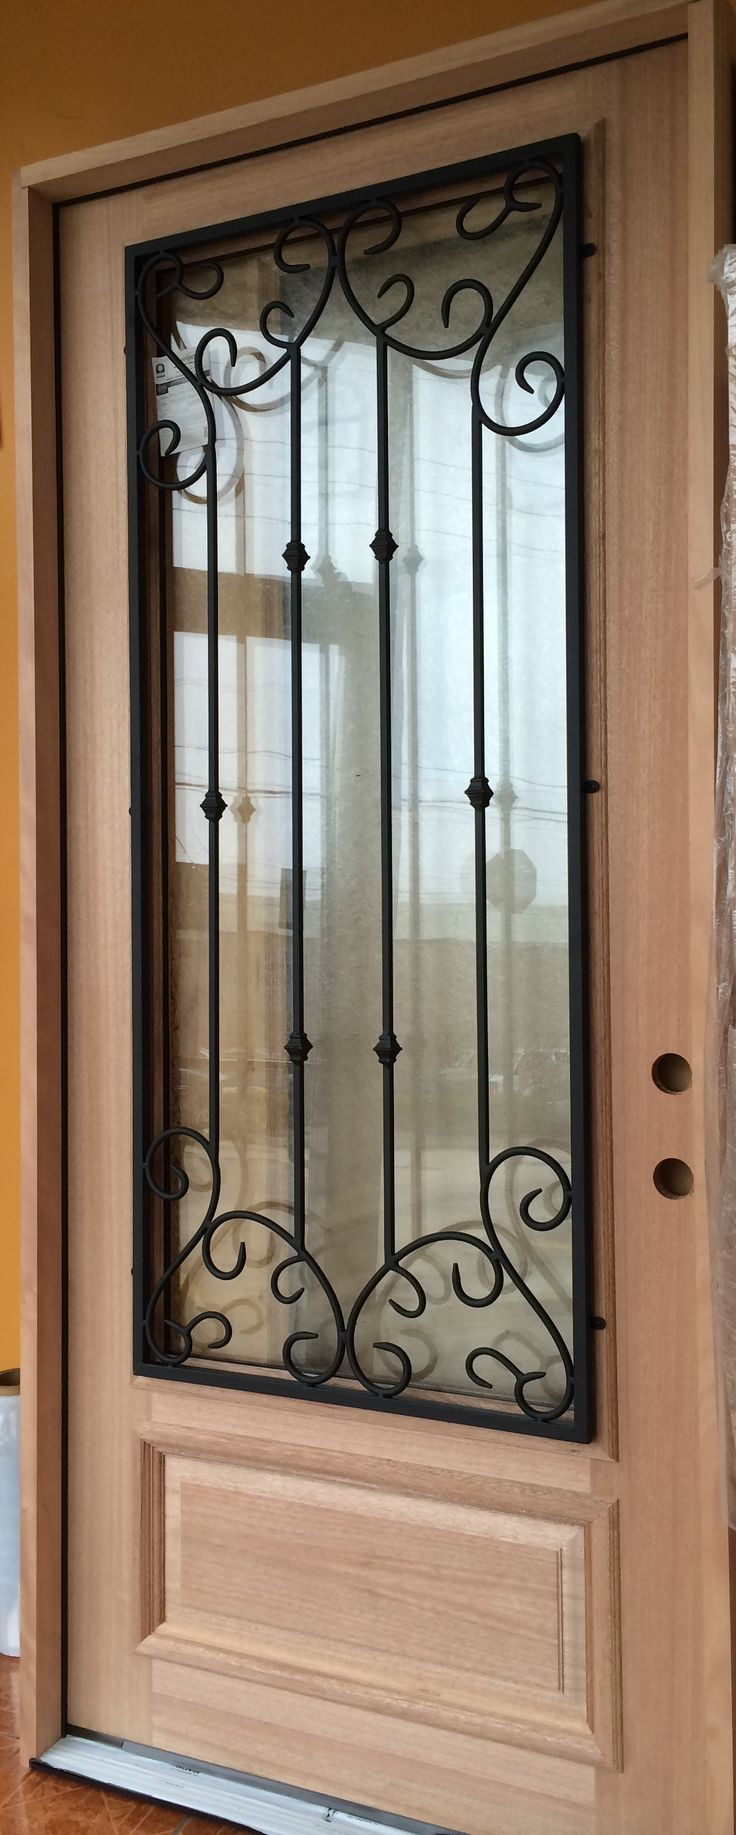 12 Best Images About Iron Grill Mahogany Wood Doors On Pinterest Home Remodeling Wood Doors